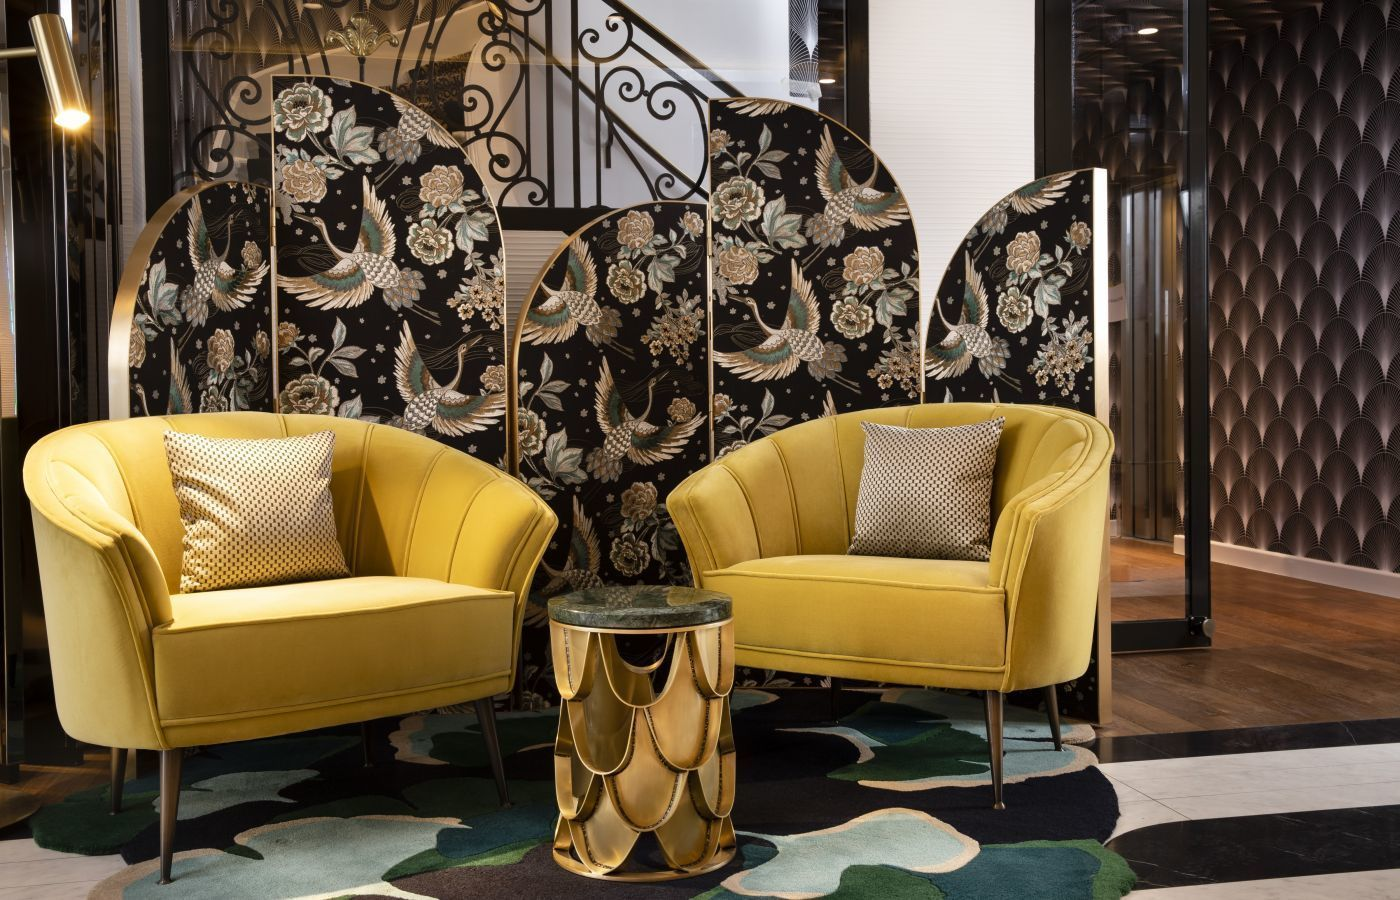 Inspiring Interior Design Projects To Discover In Paris (Part 2!) interior design project Inspiring Interior Design Projects To Discover In Paris (Part 2!) Victor Hugo Hotel Project by Laurent Maugoust